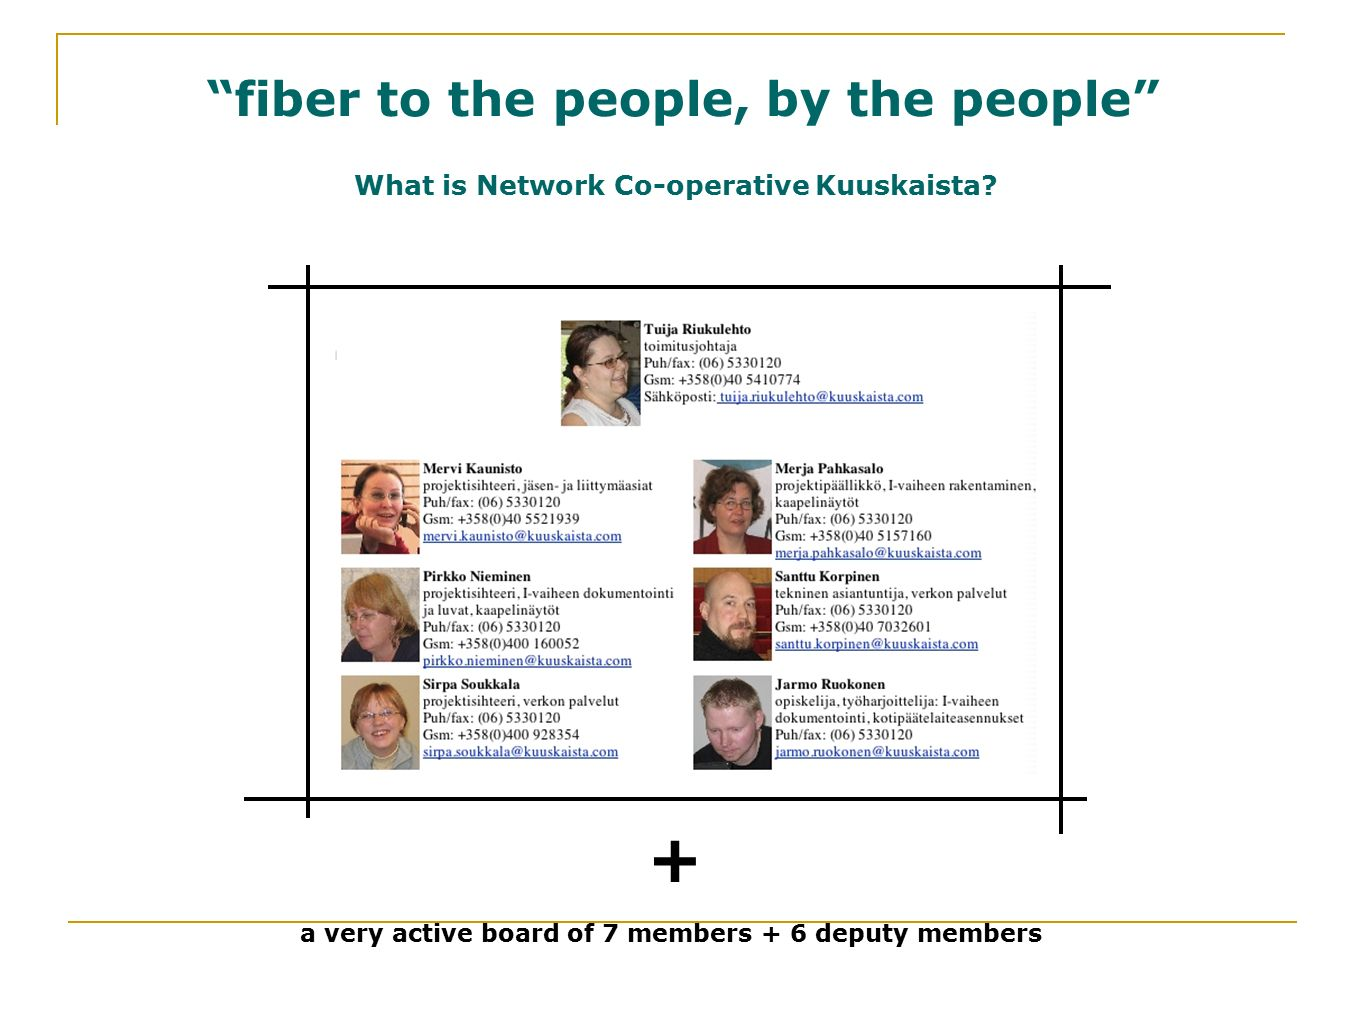 fiber to the people, by the people What is Network Co-operative Kuuskaista.